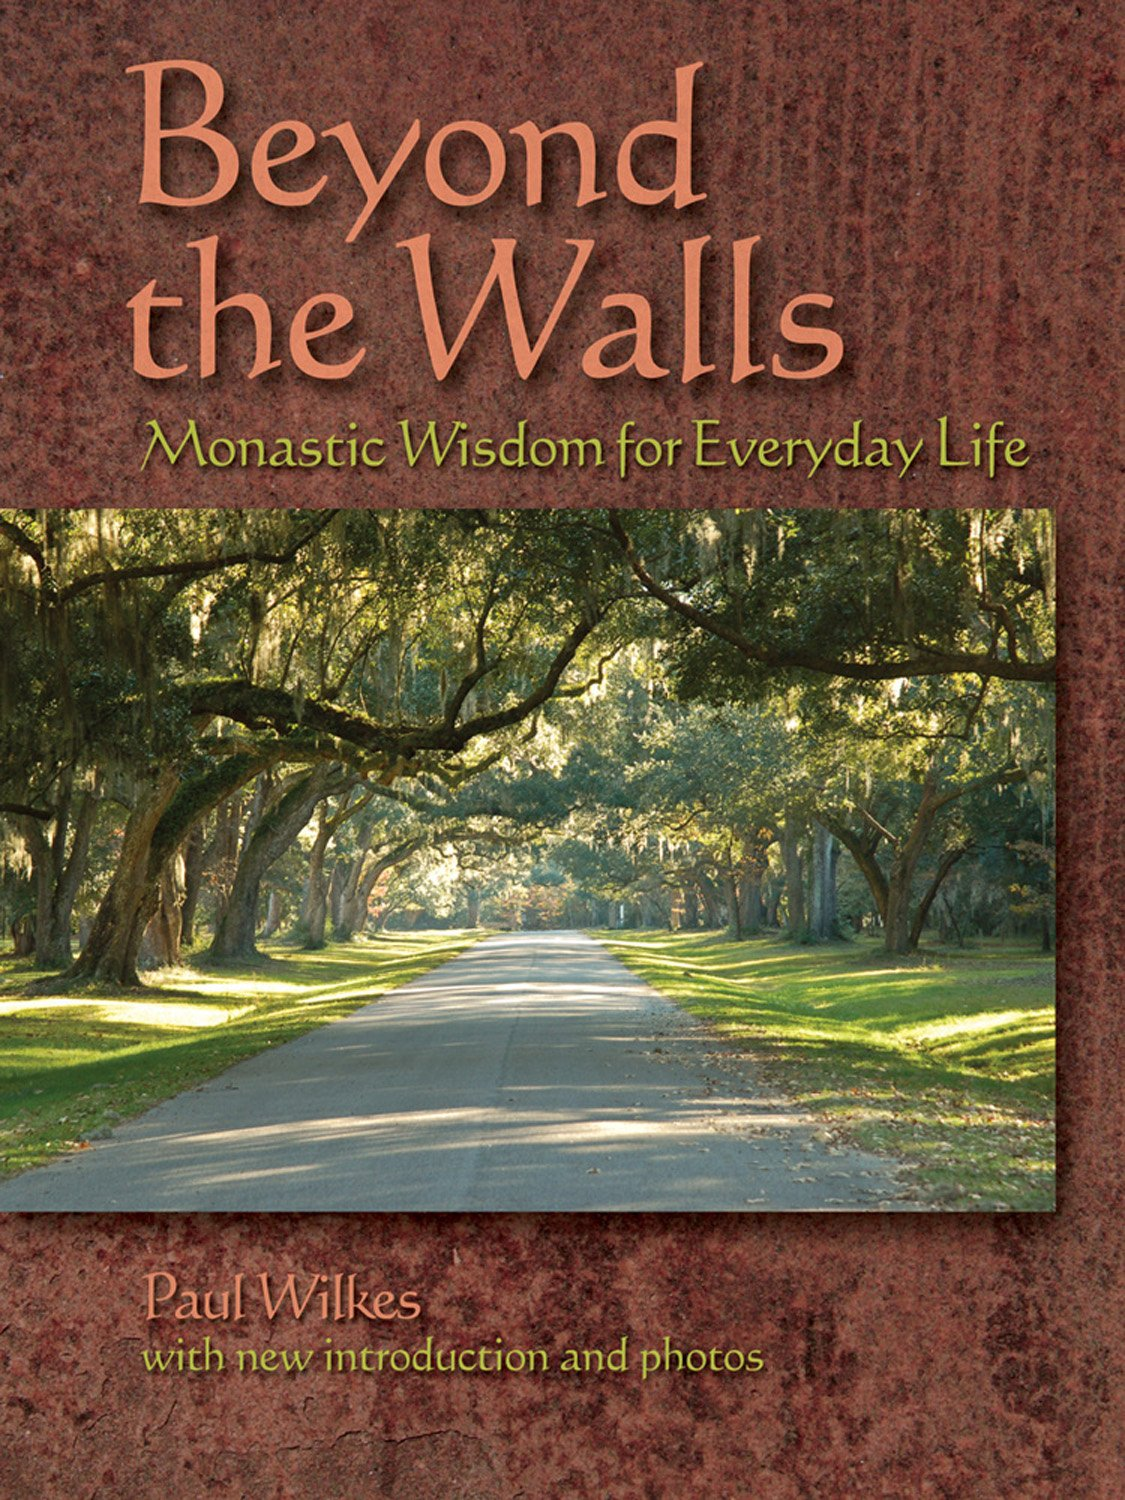 Beyond the walls monastic wisdom for everyday life paul wilkes beyond the walls monastic wisdom for everyday life paul wilkes 9780879464295 amazon books fandeluxe Gallery